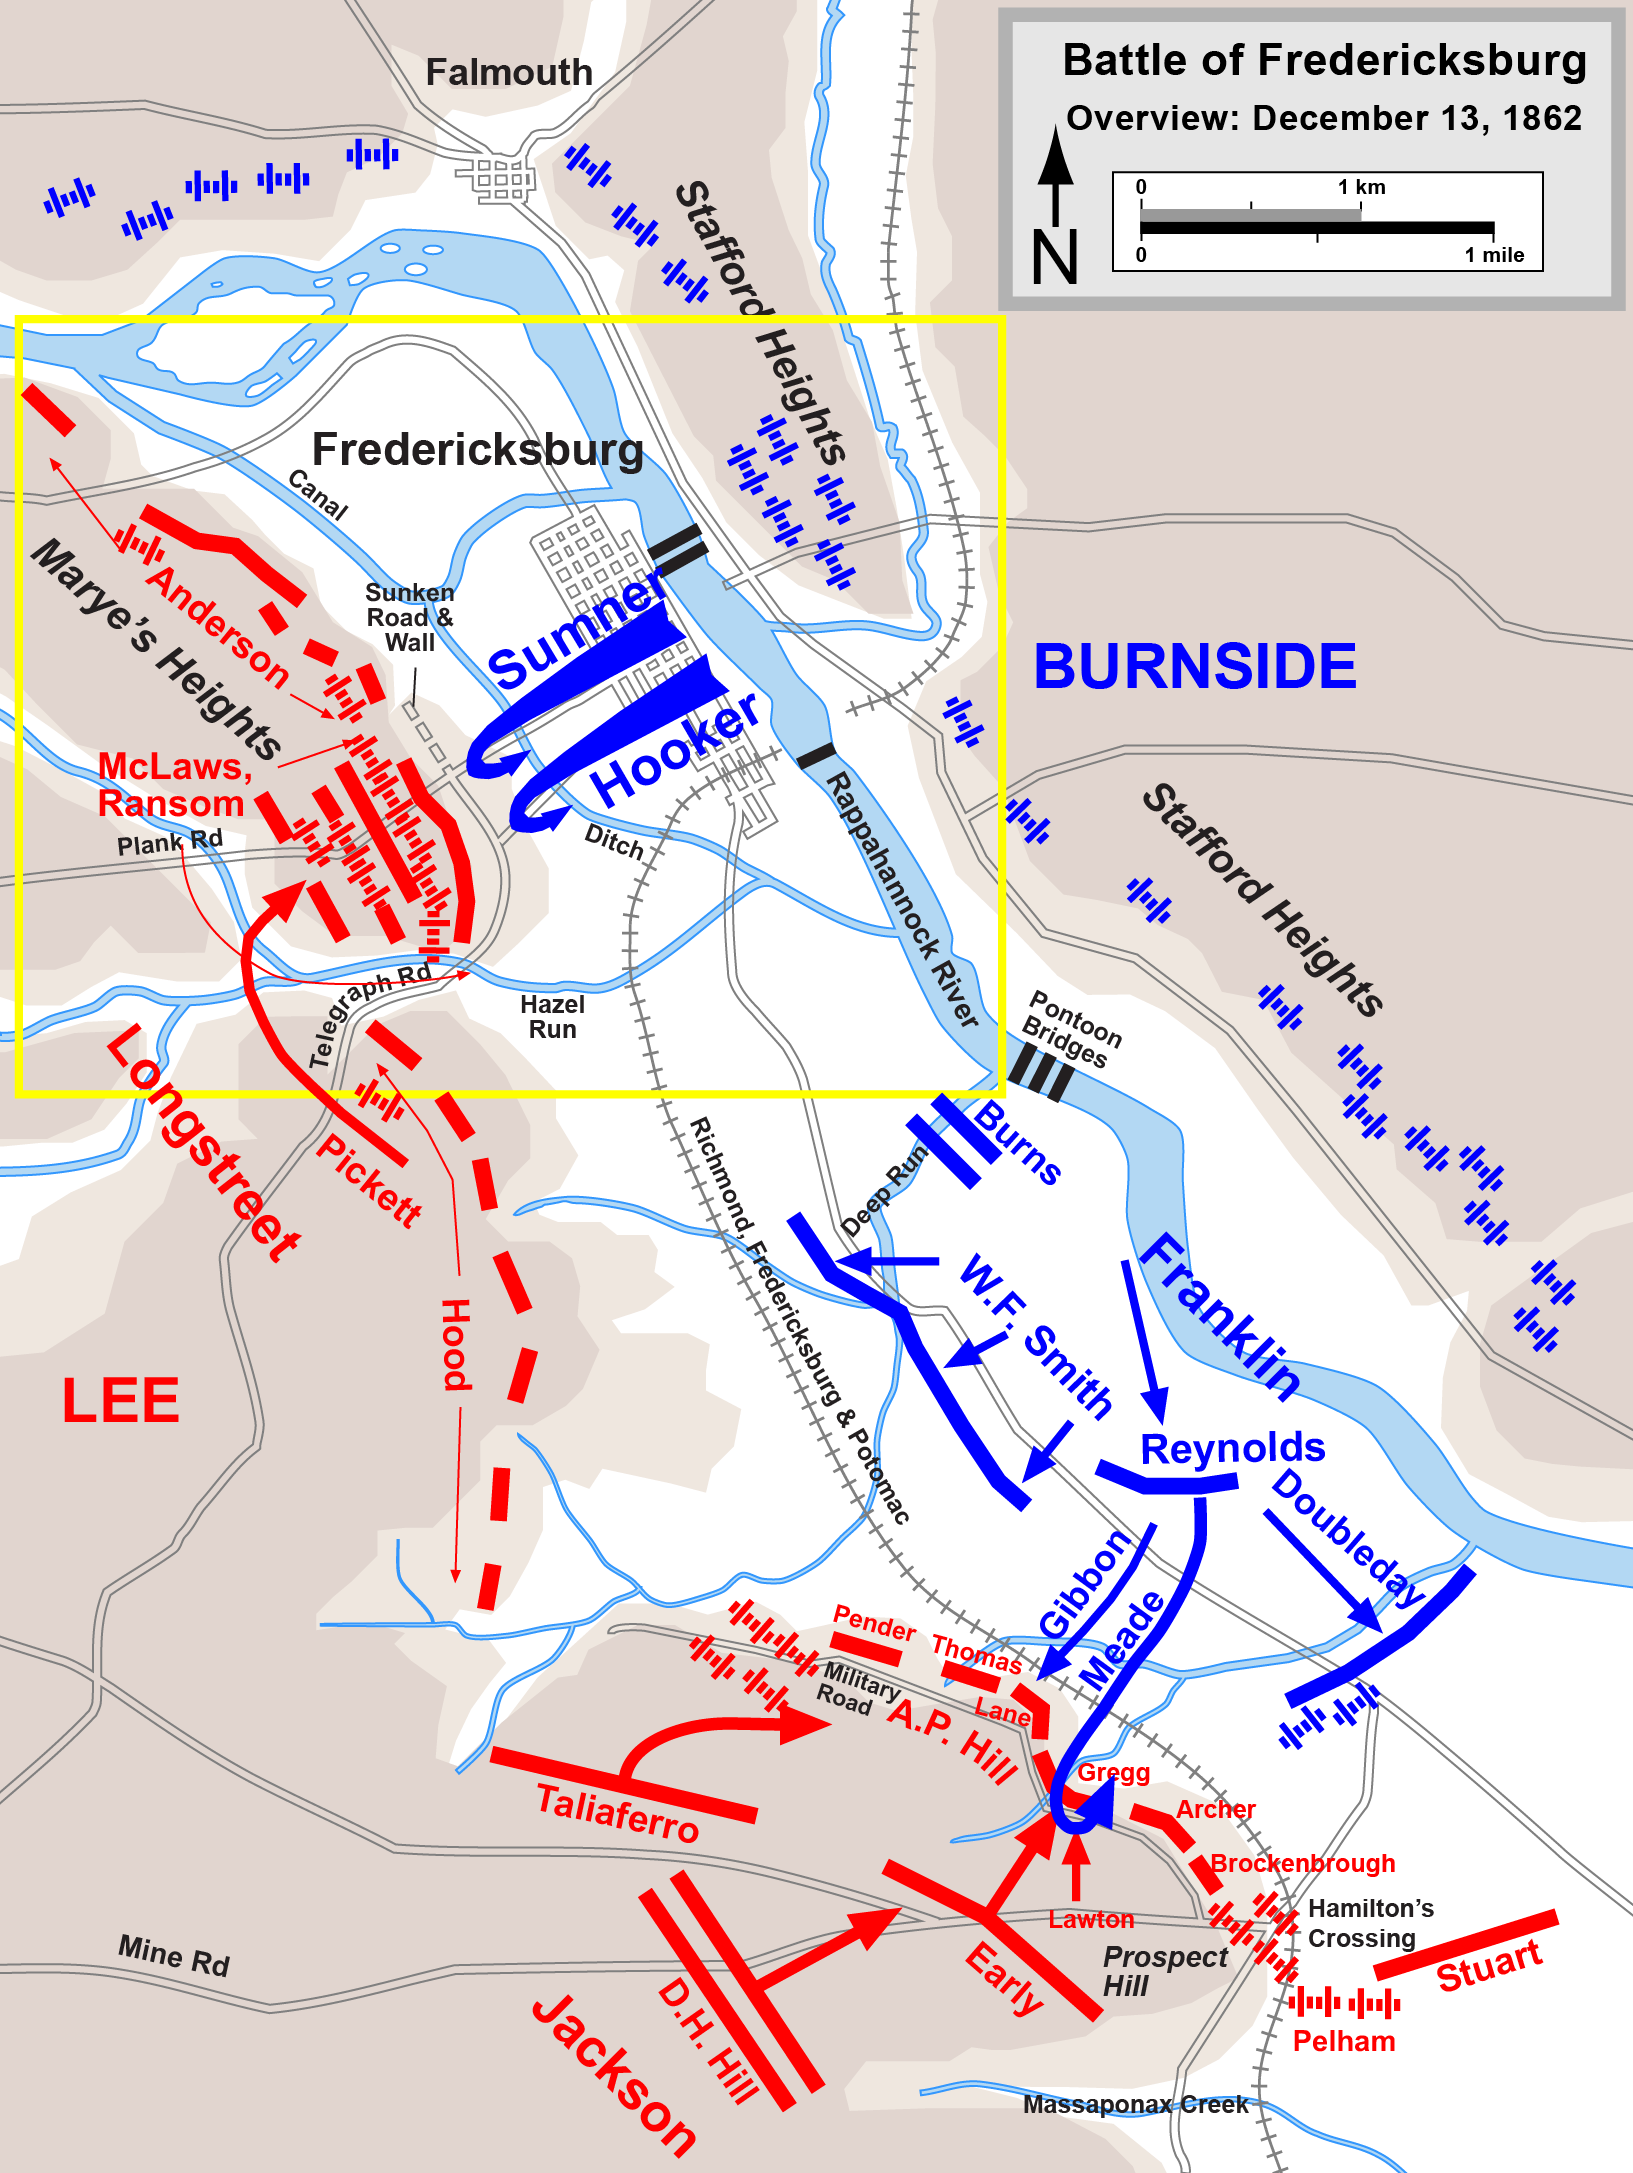 Fredericksburg Virginia Map.Map Battle Of Fredericksburg Overview December 13 1862